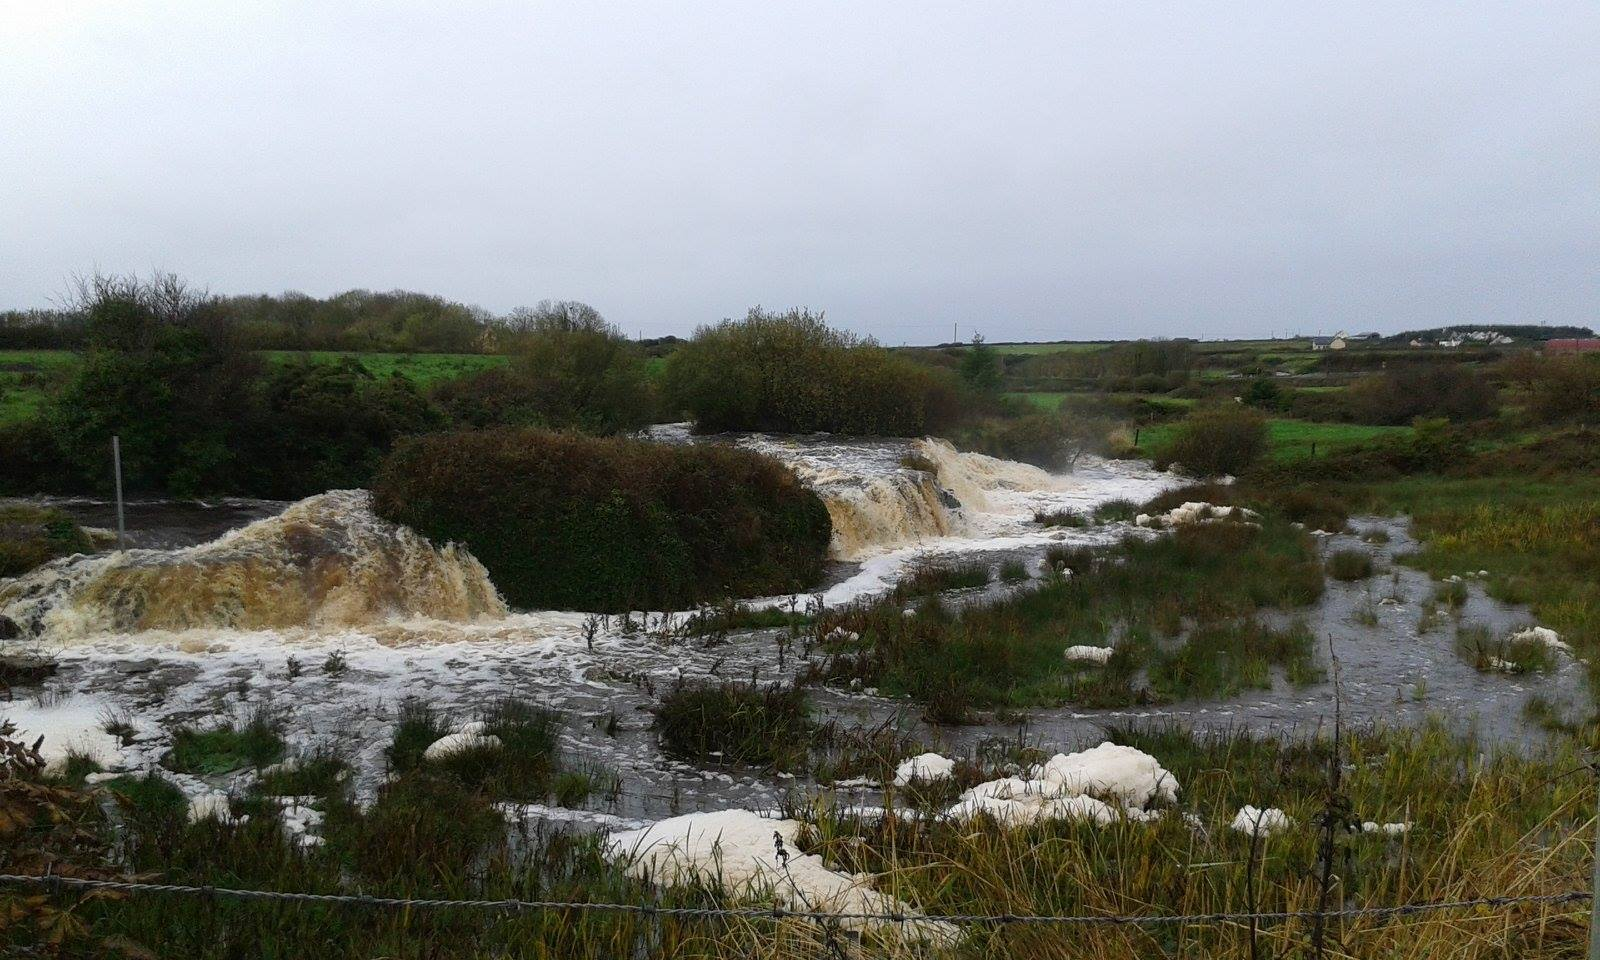 The Annageeragh River, near Quilty in County Clare, following recent heavy rain. Photo Sarah Hassall